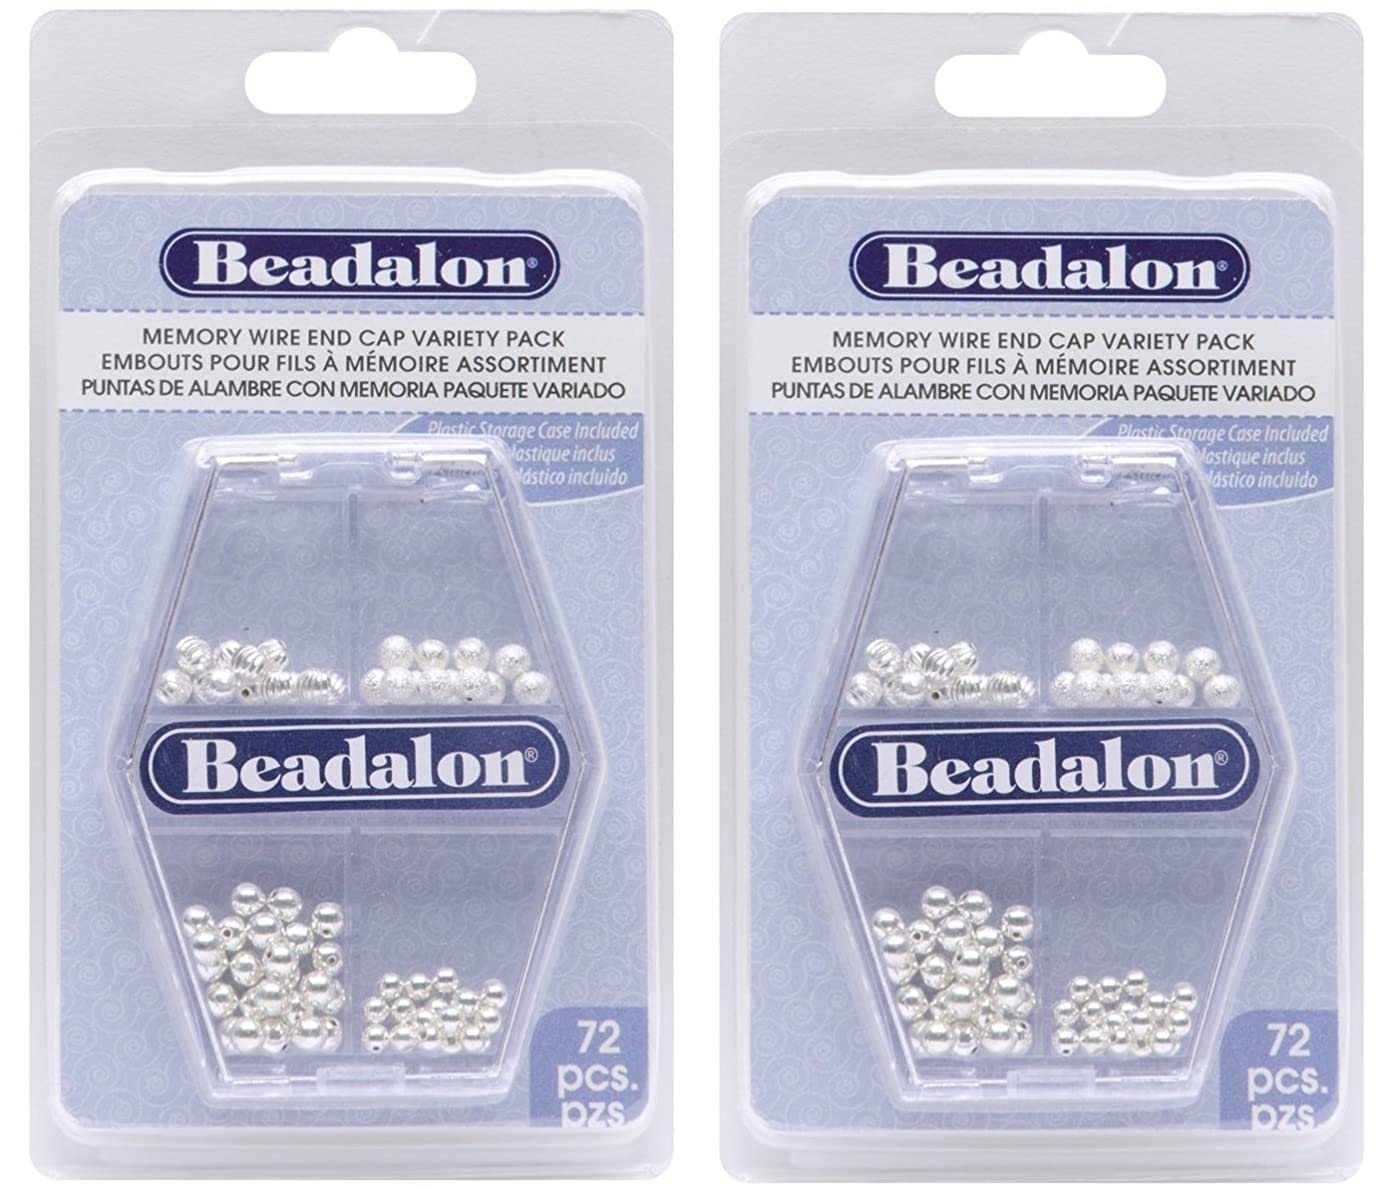 Beadalon Memory Wire End Cap, Variety Pack, 72-Piece (2 Pack)